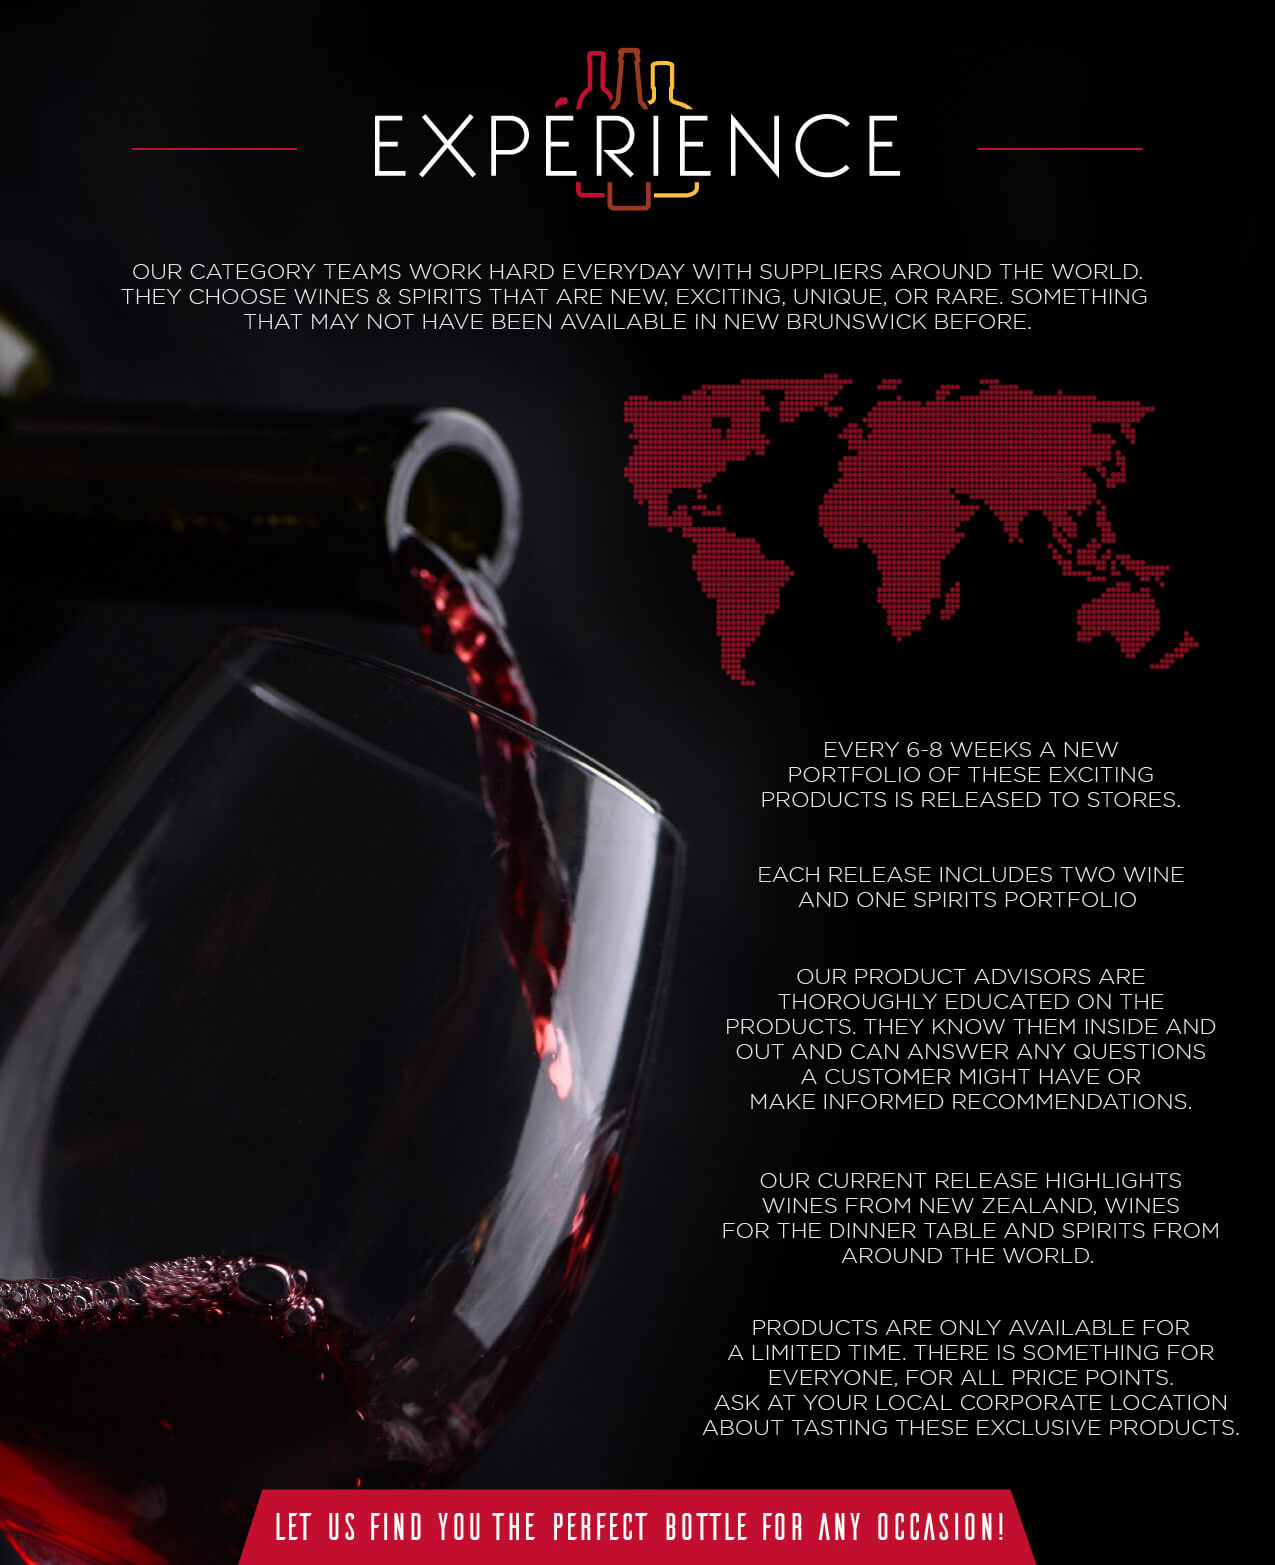 Experience INFOGRAPHIC EN